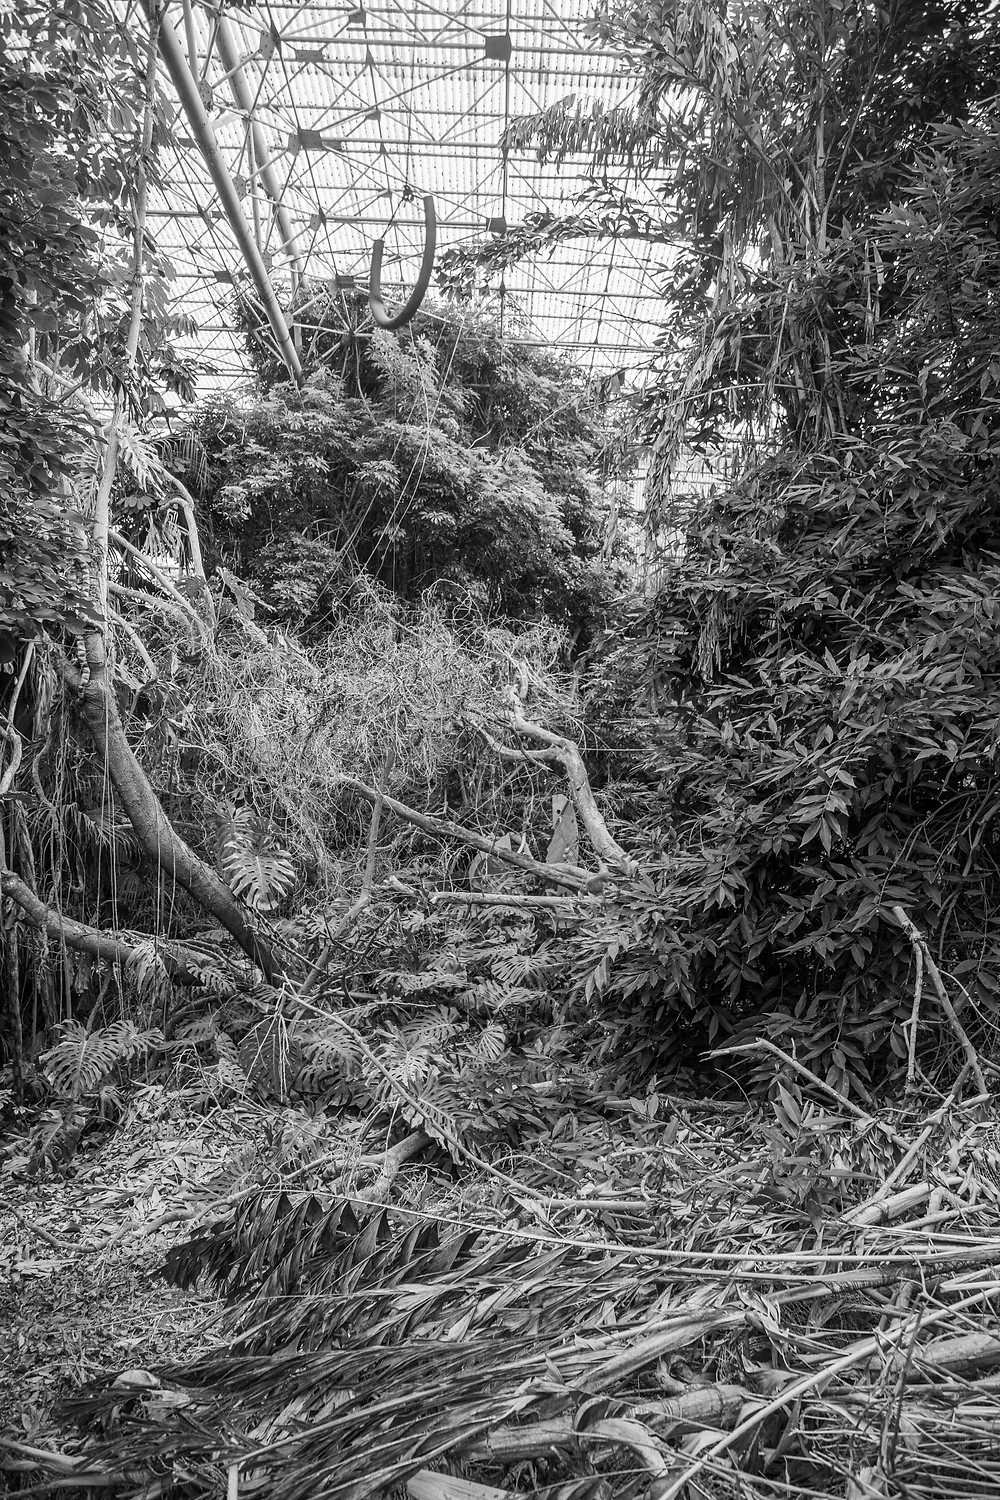 A portrait of collapsed trees in the demolished Jungle Park in Japan, west of Tokyo. Photograph by Megan Kennedy.